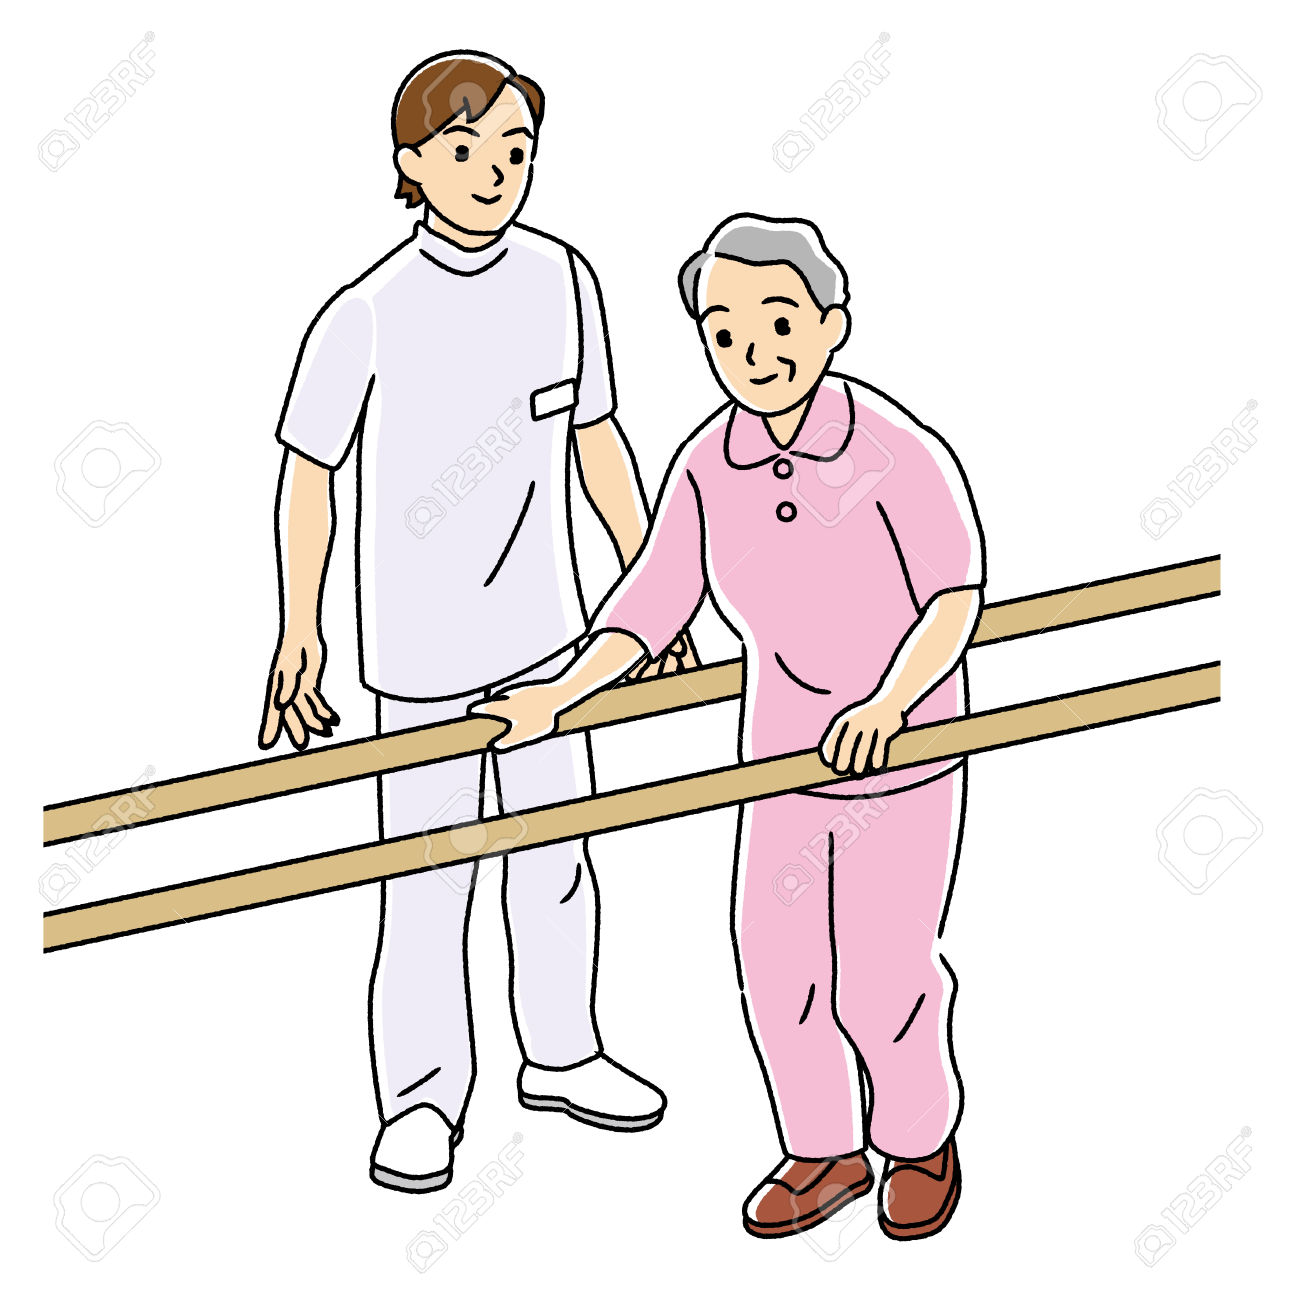 Physical Therapist To Carry Out The Rehabilitation Of The Elderly.